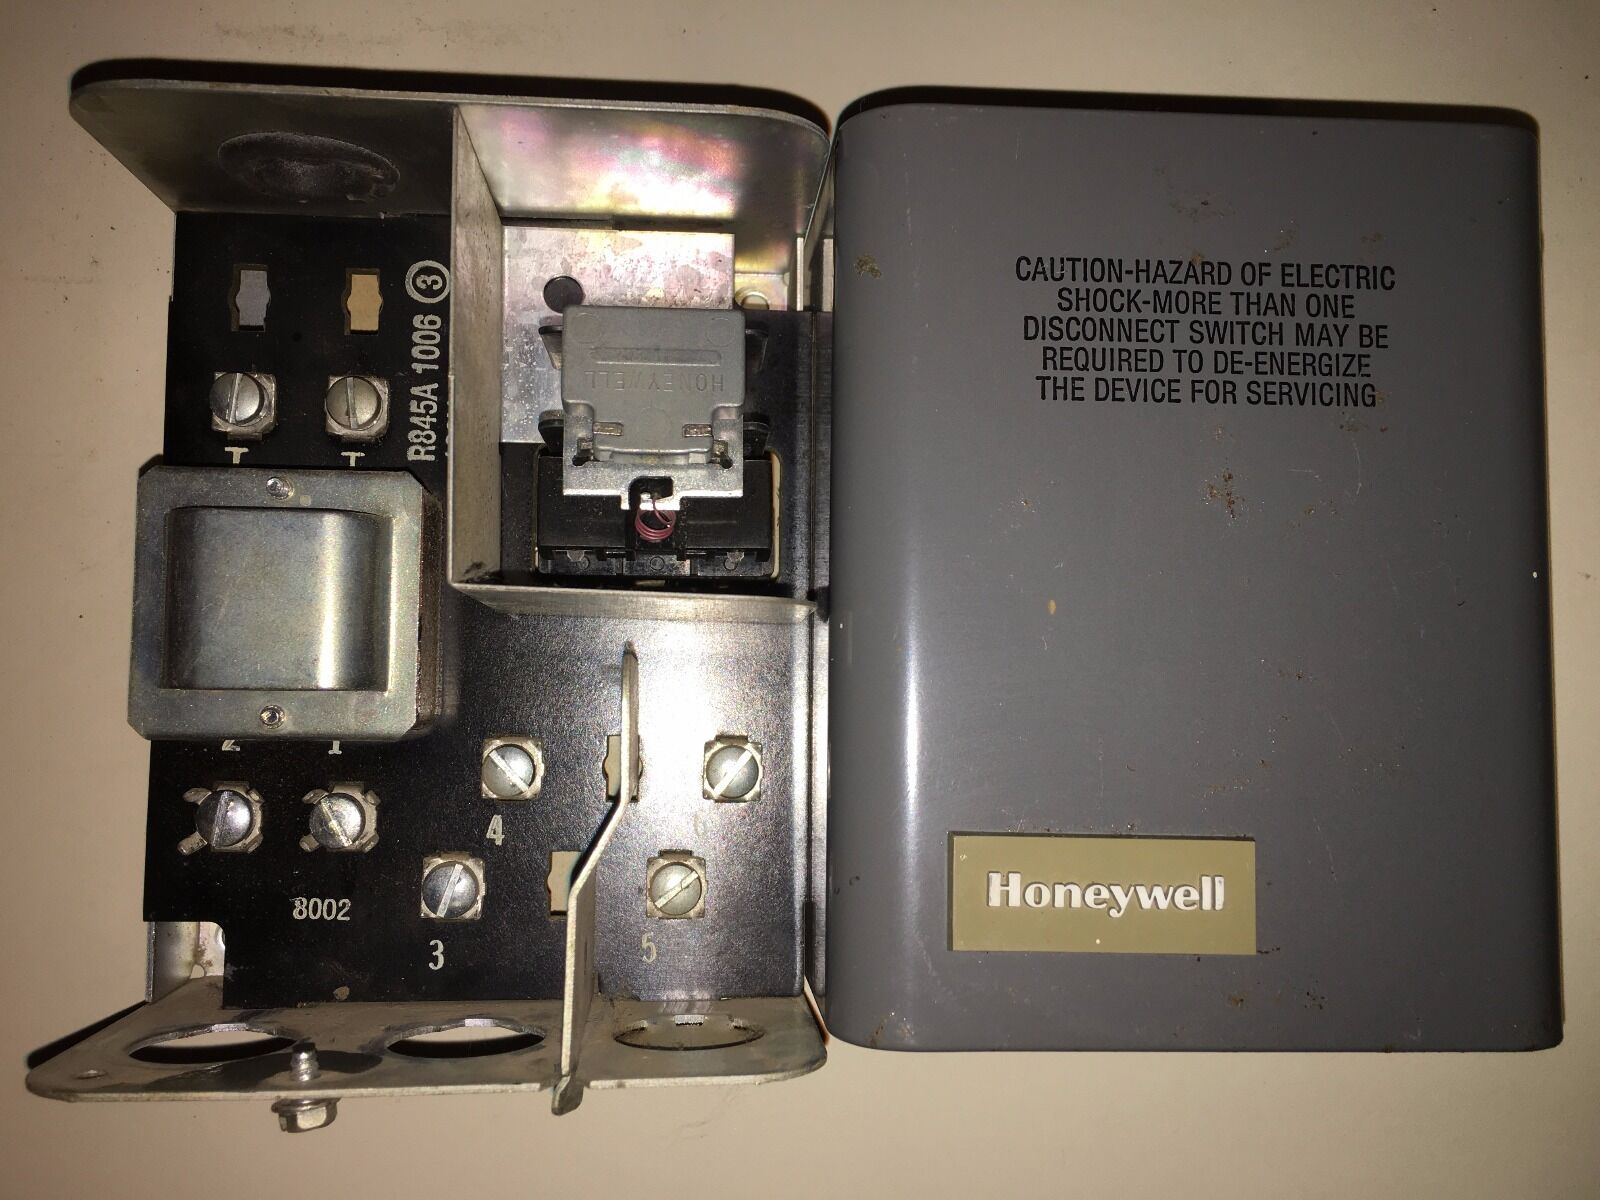 Honeywell R845 Wiring Diagram 29 Images Switching Relay R845a Dolgular Com S L1600 At Cita